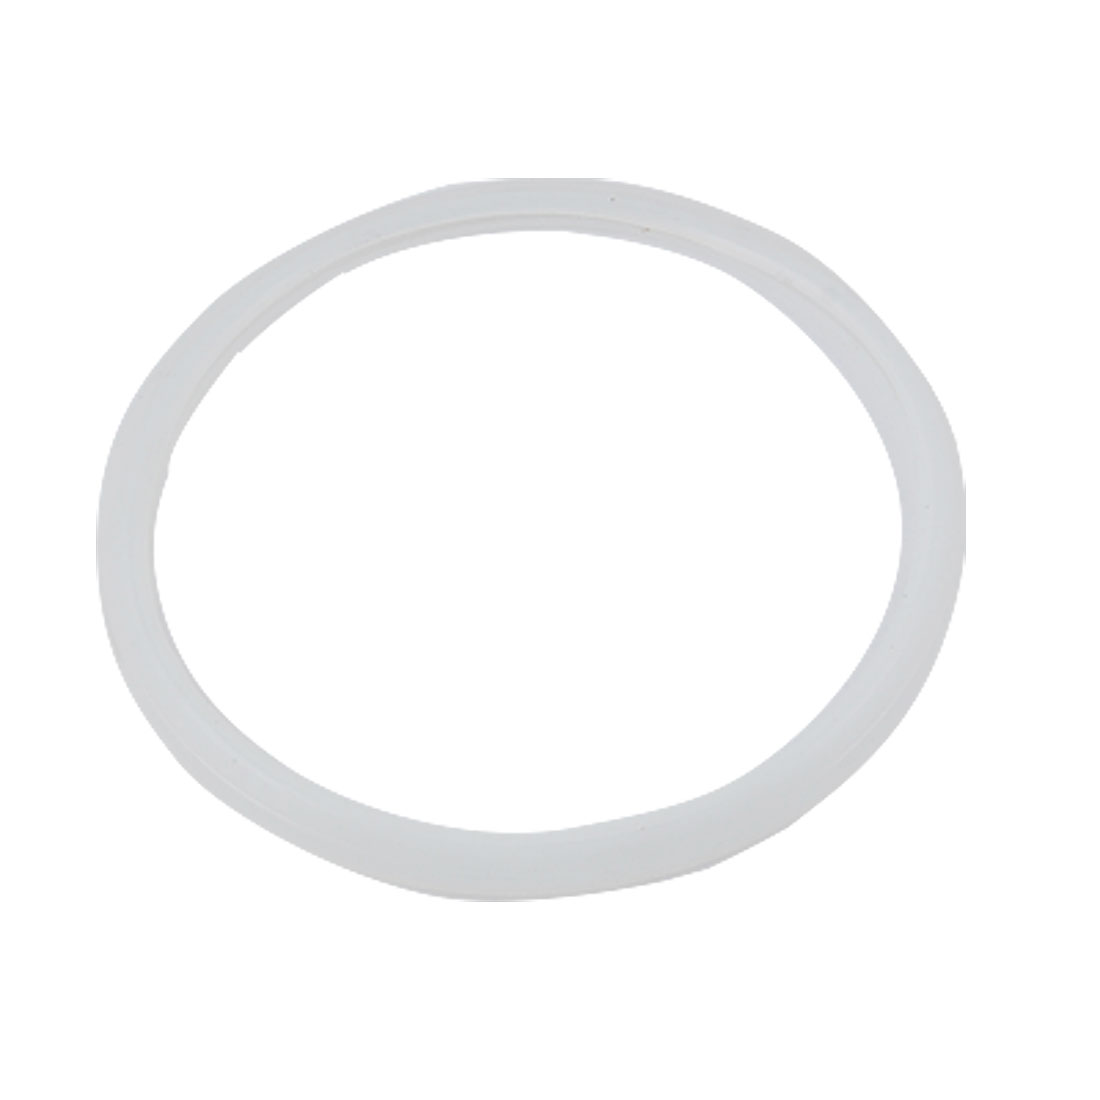 "7 9/10"" Inside Diameter Pressure Cooker Part Gasket Sealing Ring"